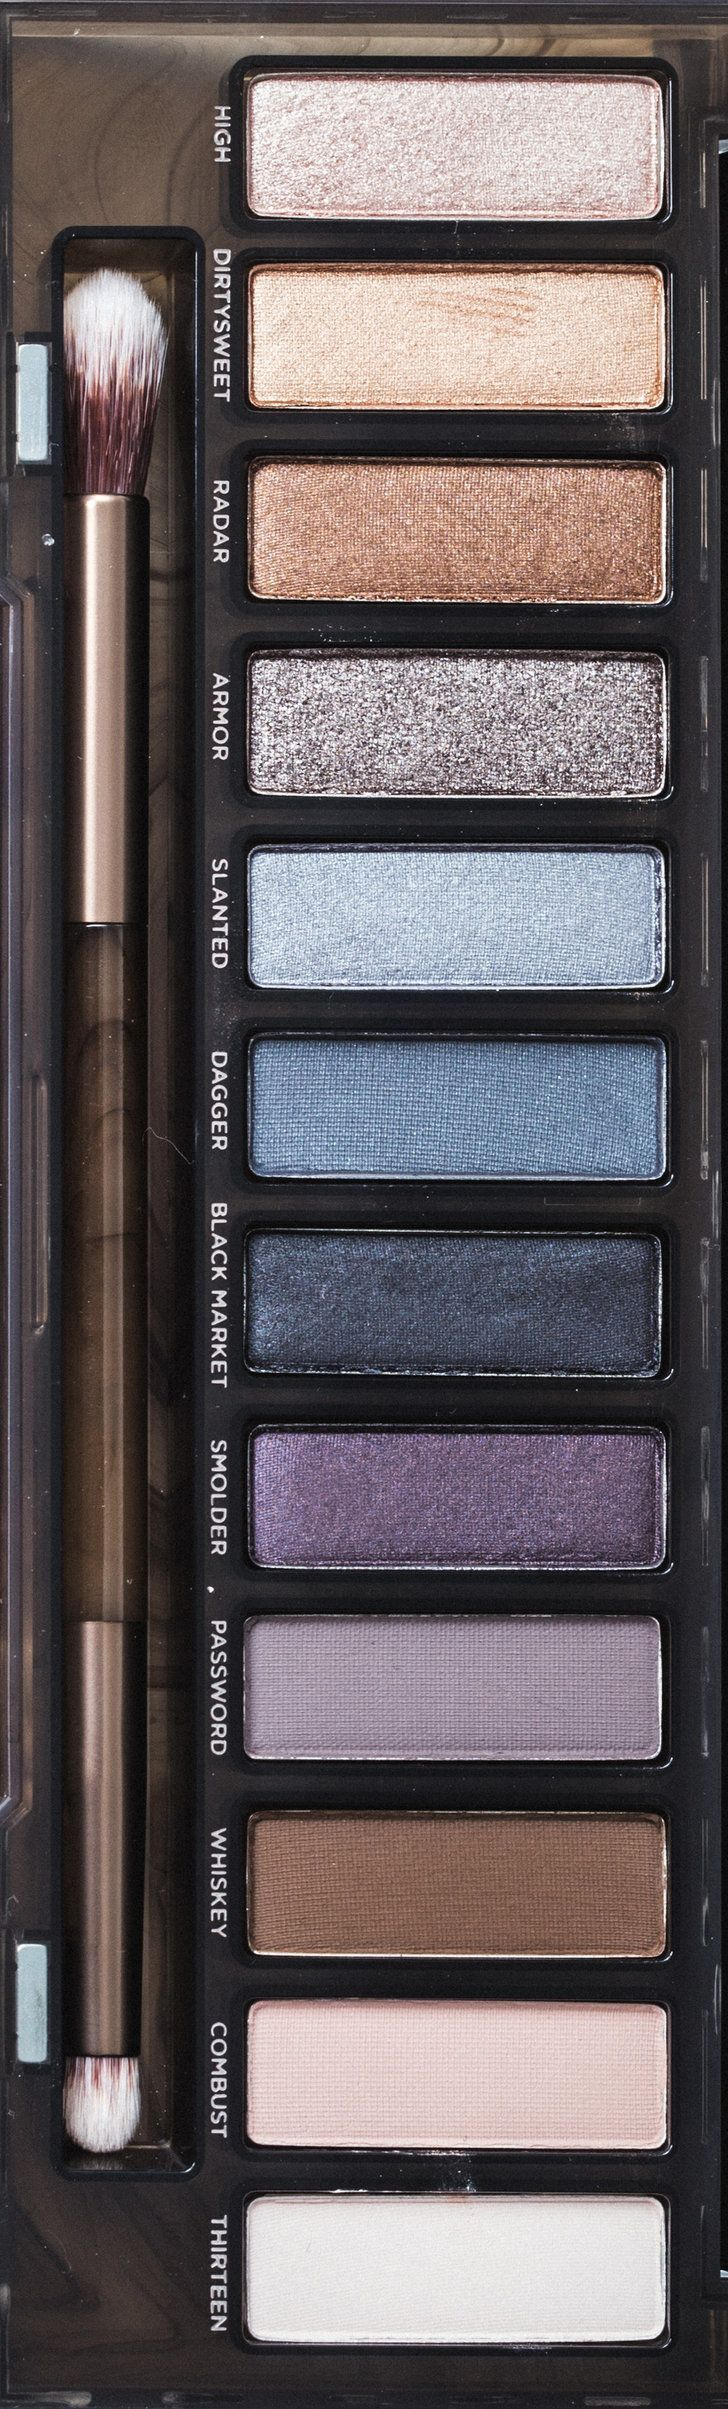 Urban Decay is launching the new Naked Smoky Palette this Summer! Get a close up view of all the new eye shadow shades (plus a few re-released colors). The textures range from shimmer to matte. You can create a blue, purple, neutral, or classic smoky eye using all these amazing shades. Plus, get our smoky eye makeup tutorial.